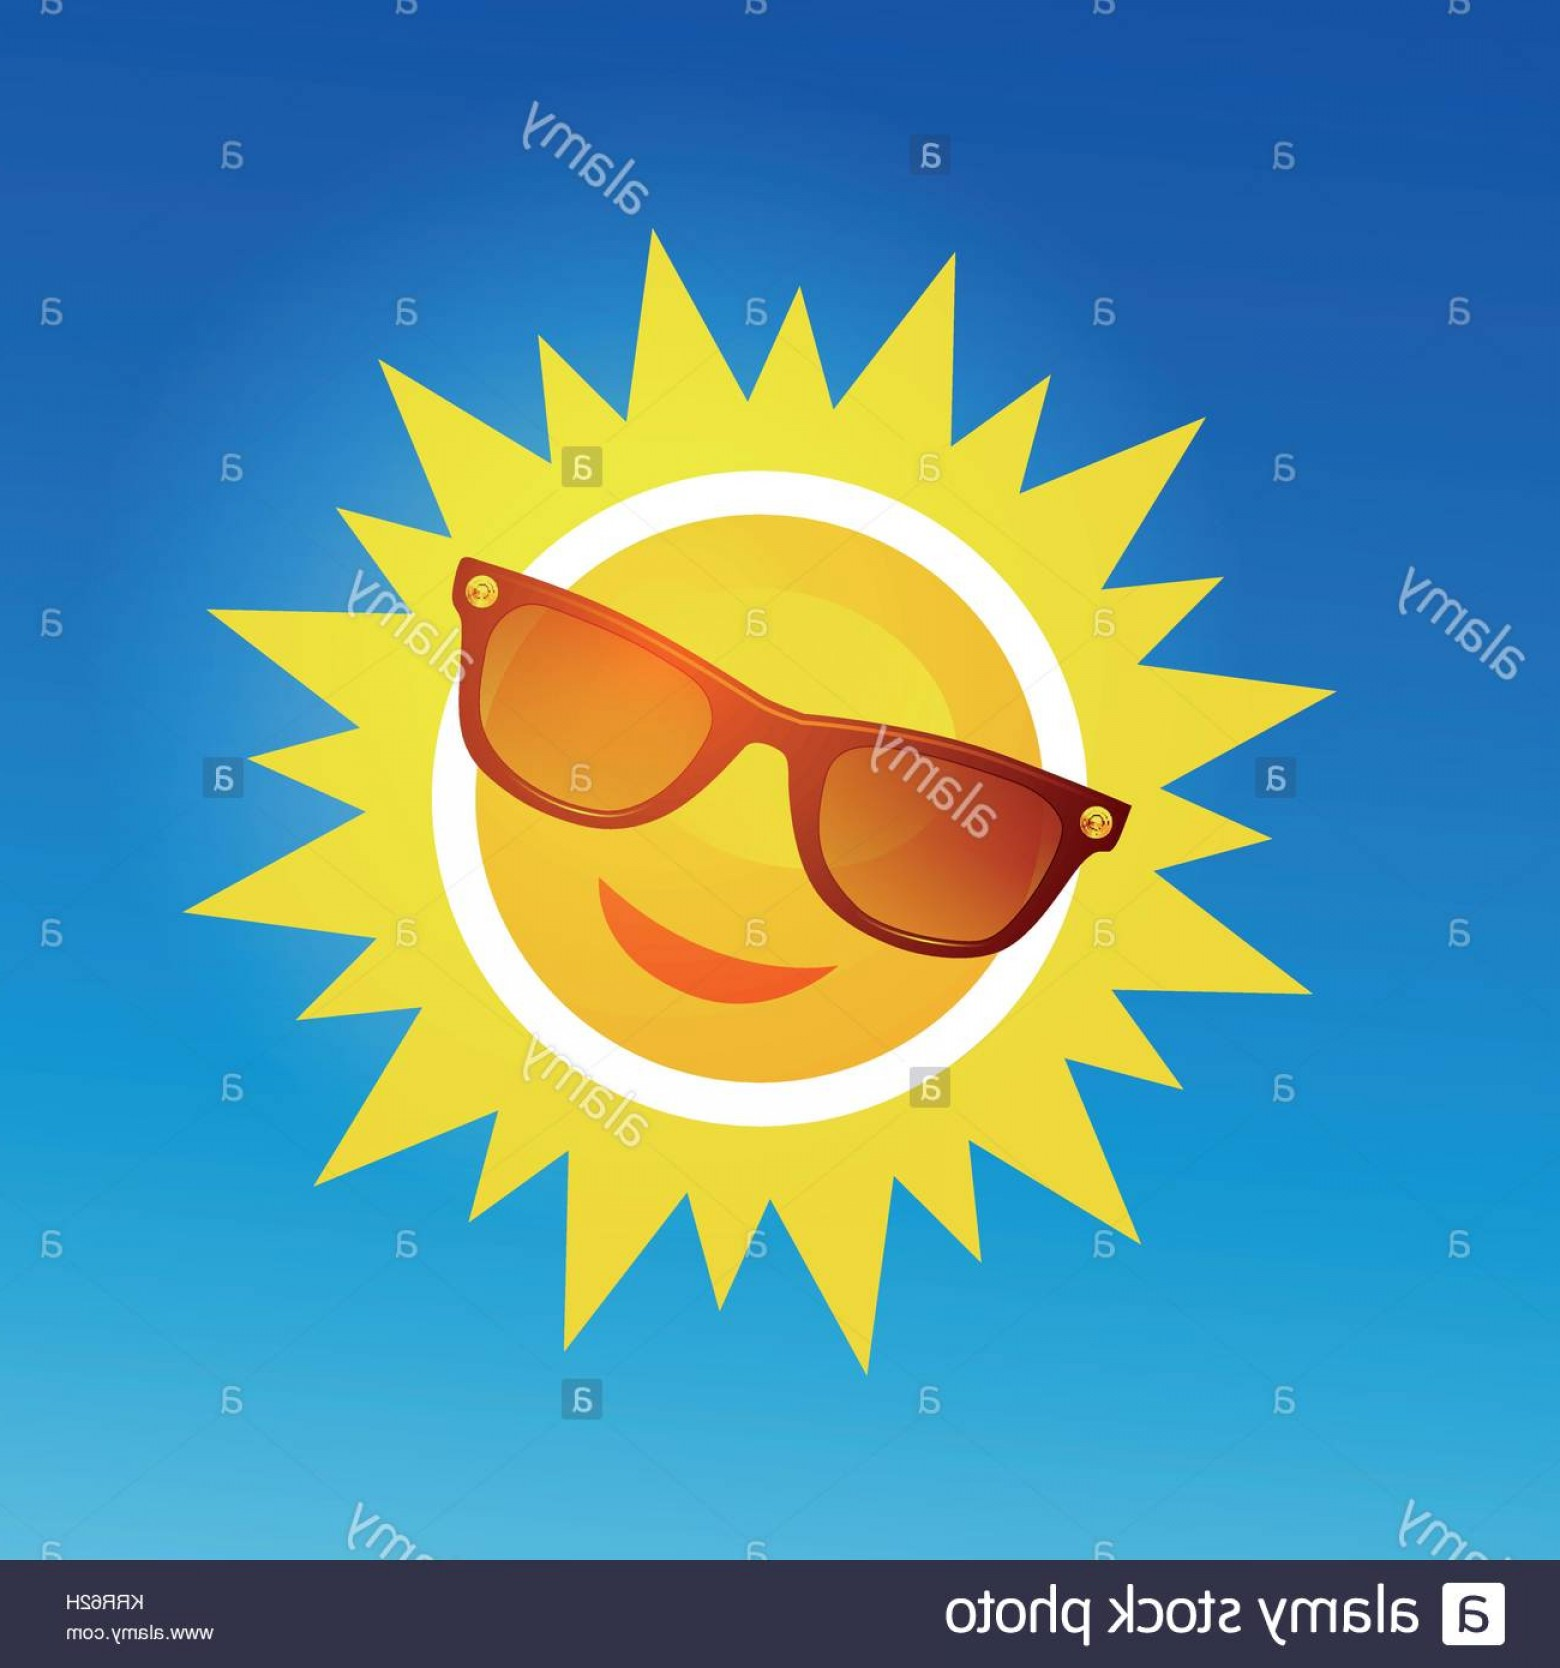 Blue Background Vector Cartoon Sun: Stock Photo Cheerful Smiling Cartoon Sun In Sunglasses On Blue Background Vector